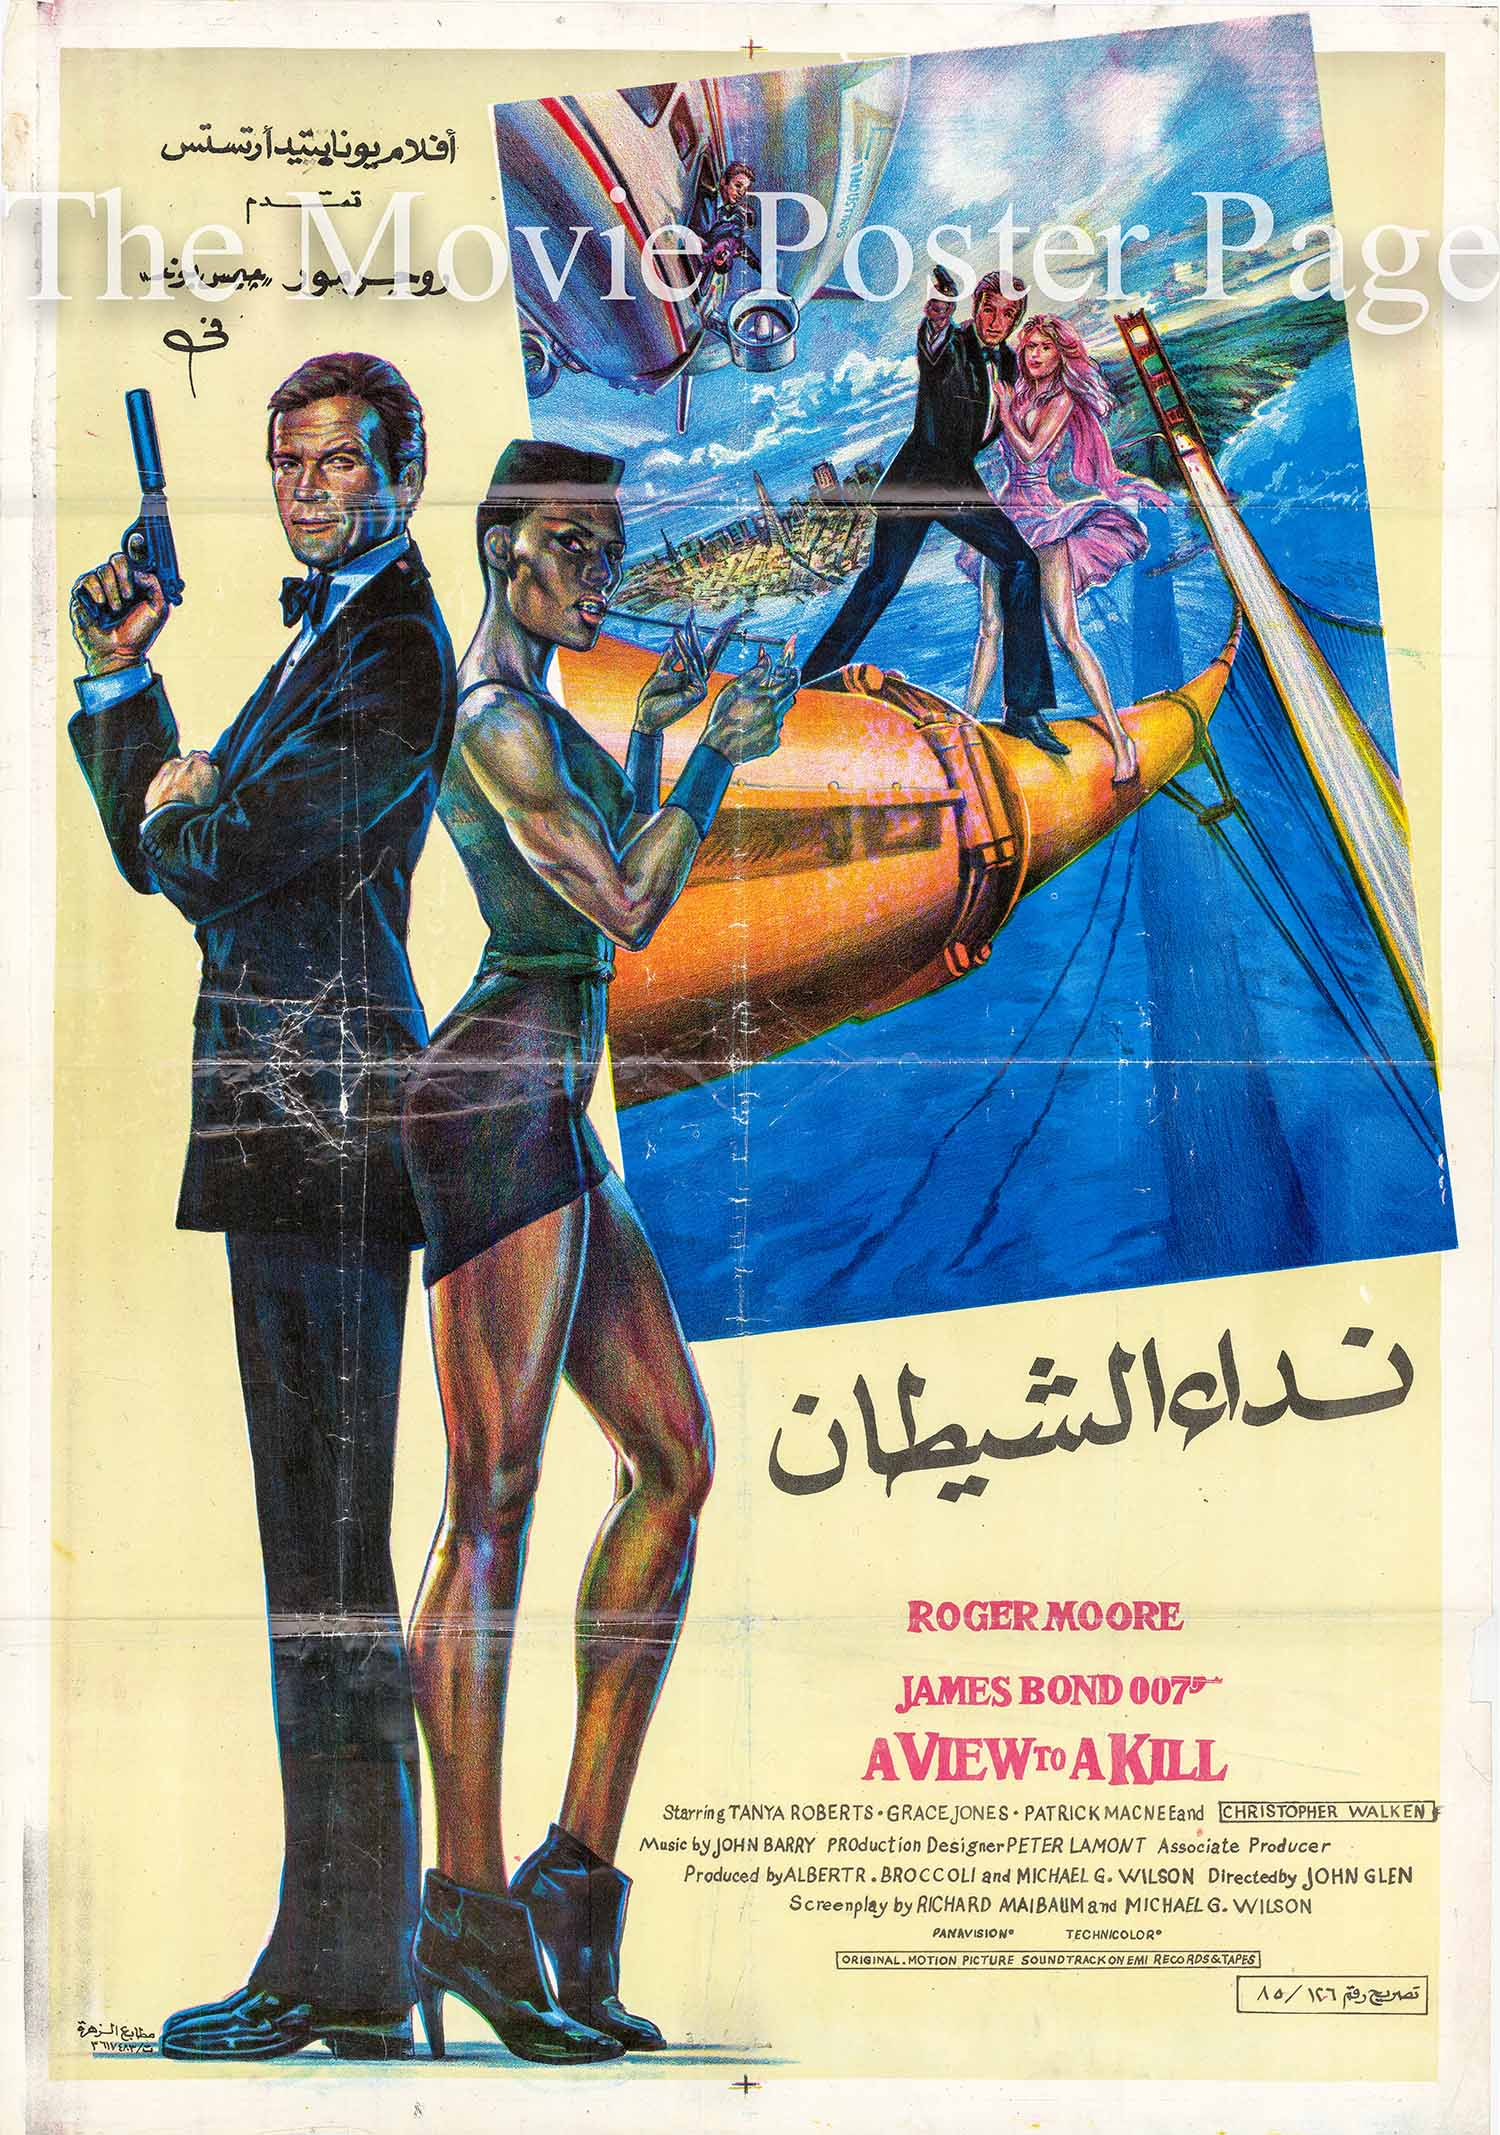 Pictured is an Egyptian promotional poster for the 1985 John Glen film View to a Kill starring Roger Moore as James Bond.